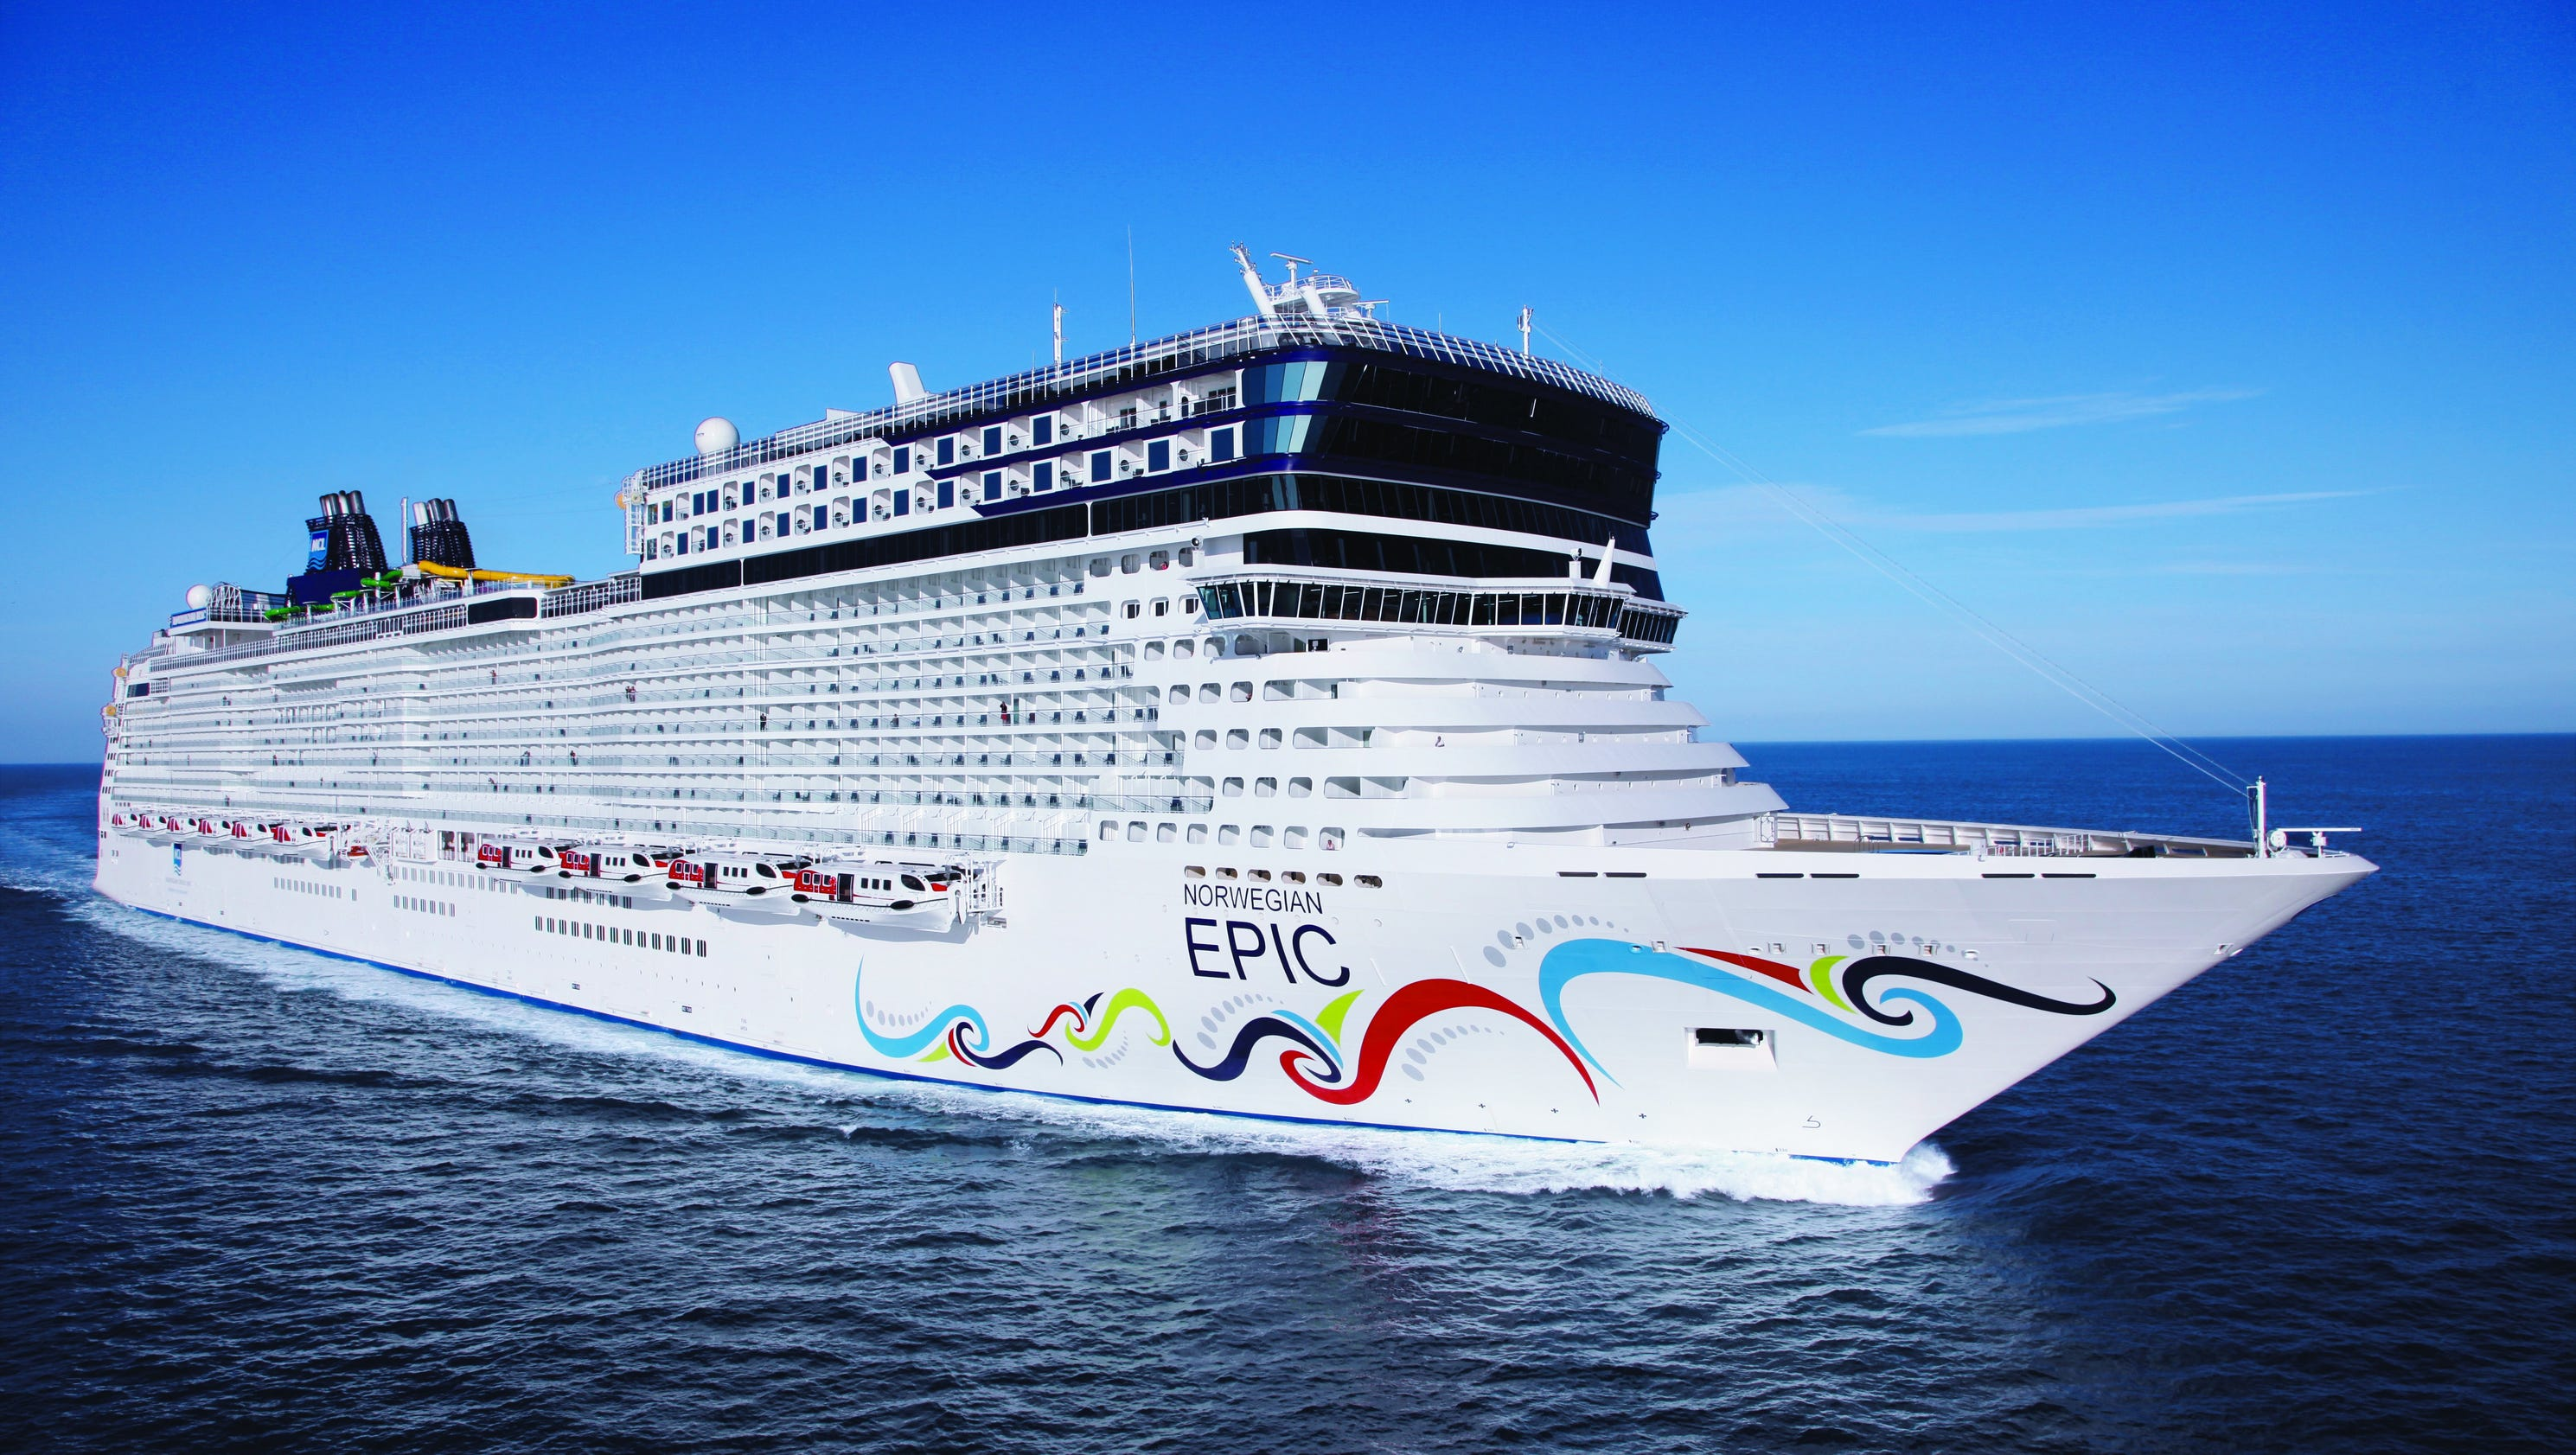 Norwegian Epic Cruise Ship To Become Largest Sailing From San Juan - Starward cruise ship